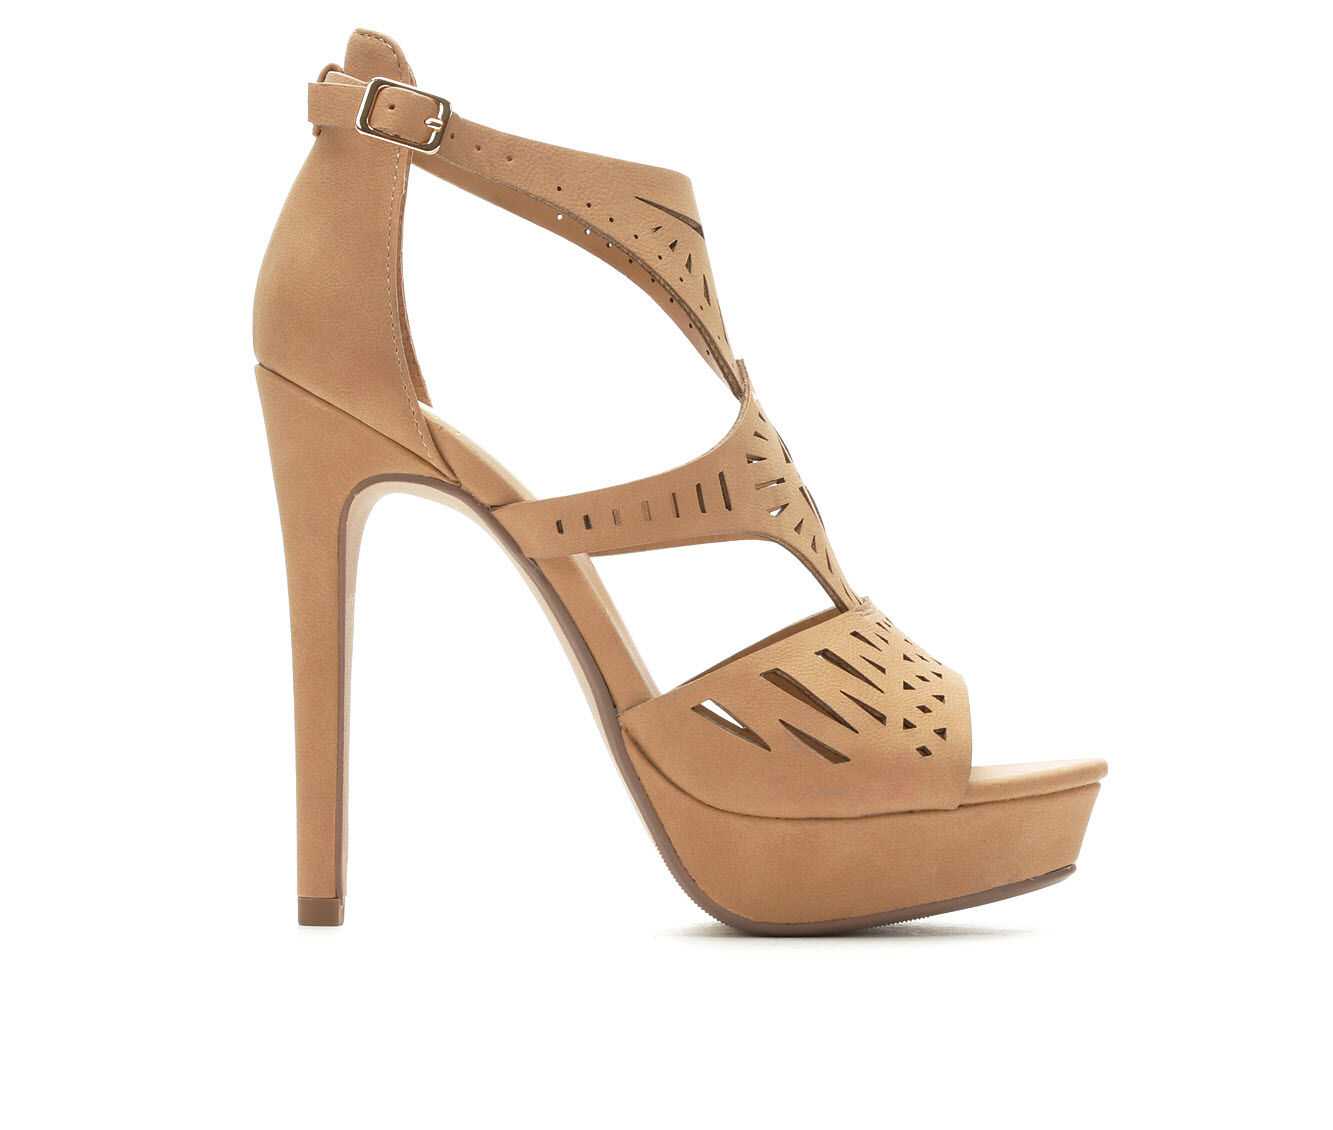 Women's Delicious Abagale Heeled Sandals Dk Sand HL PU